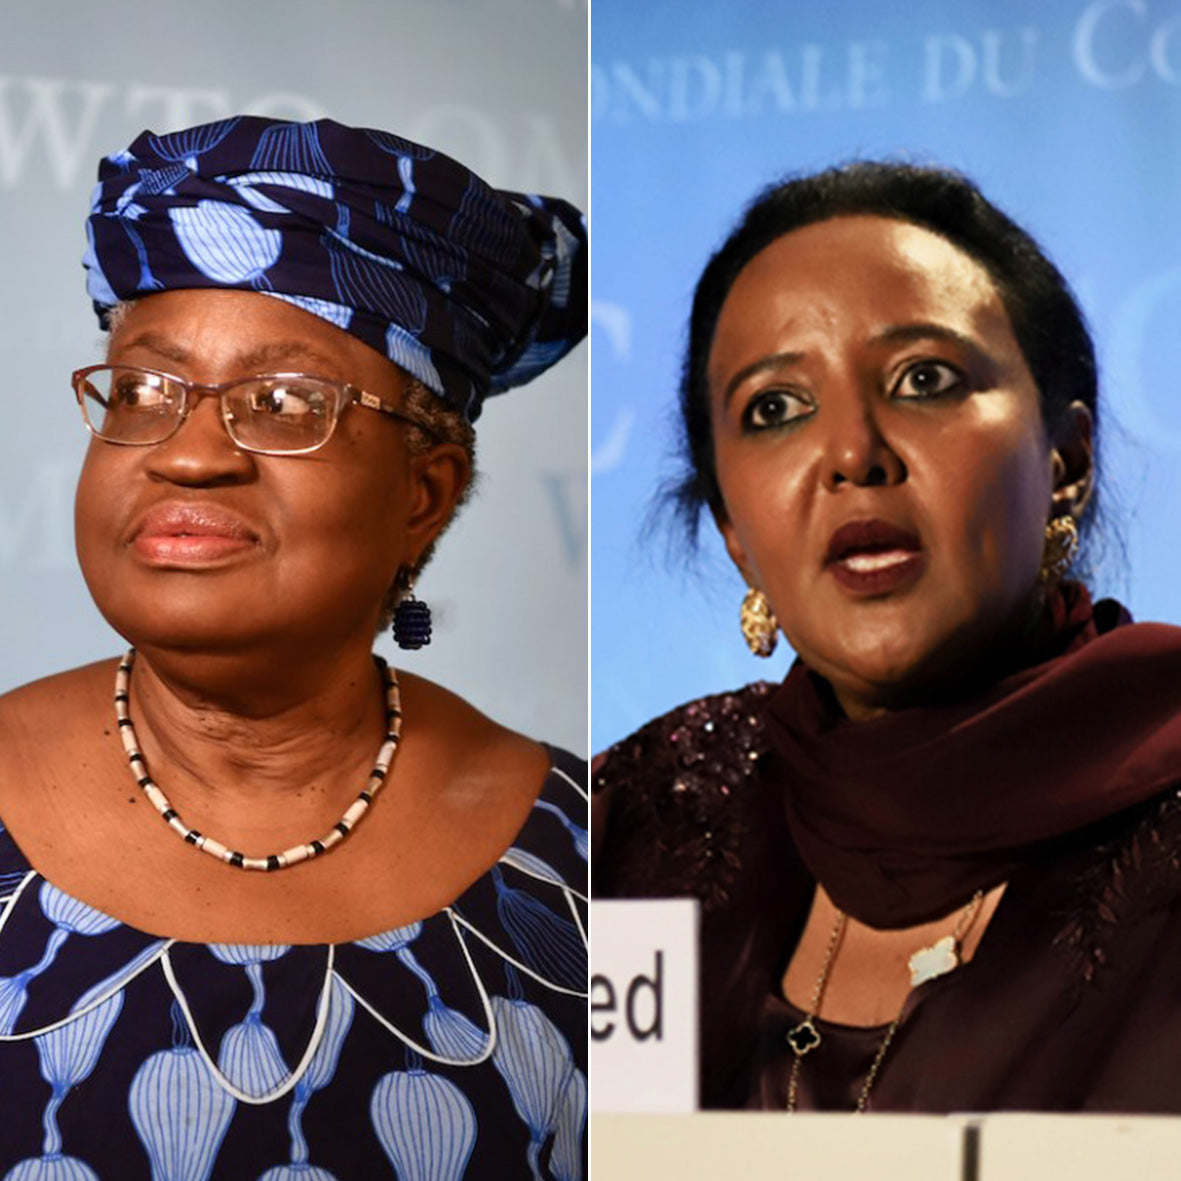 African Development: Two African Candidates Make WTO Final Five